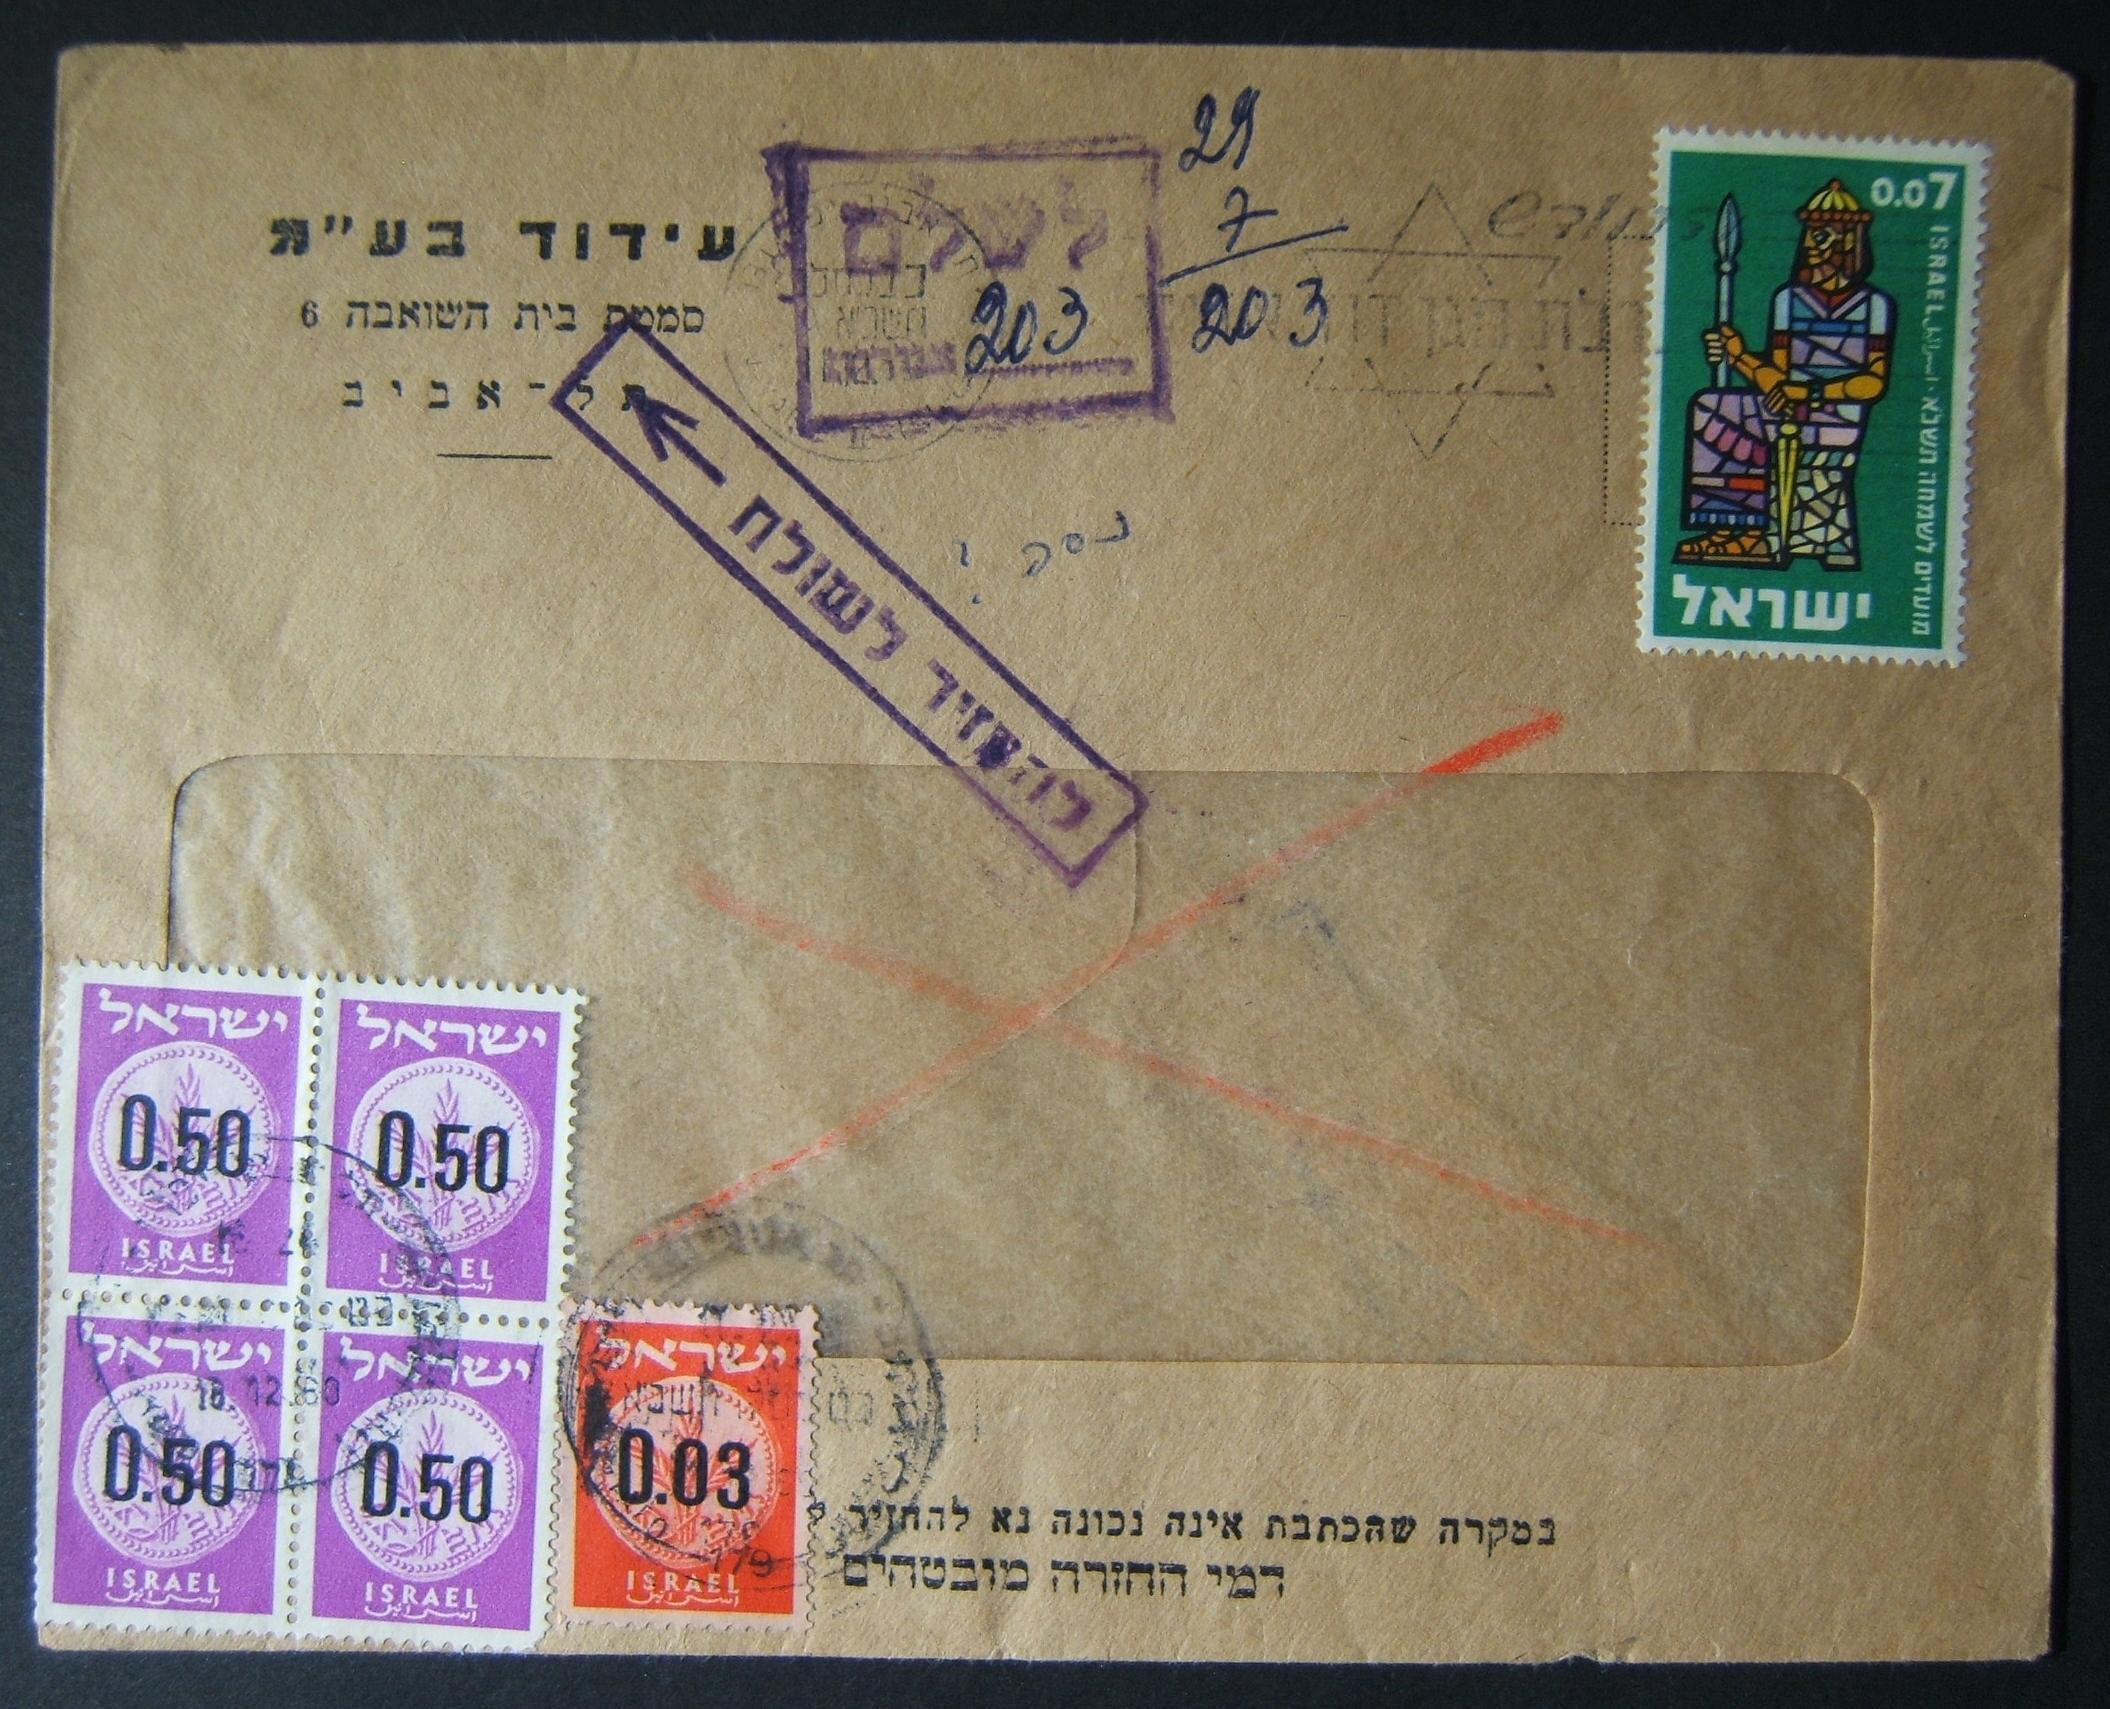 1960 domestic 'top of the pile' taxed franking: 11-12-60 pm comm. cv ex TLV franked 7 Ag at DO-10 period rate using 1960 New Year Ba198, but returned to sender as address unknown (